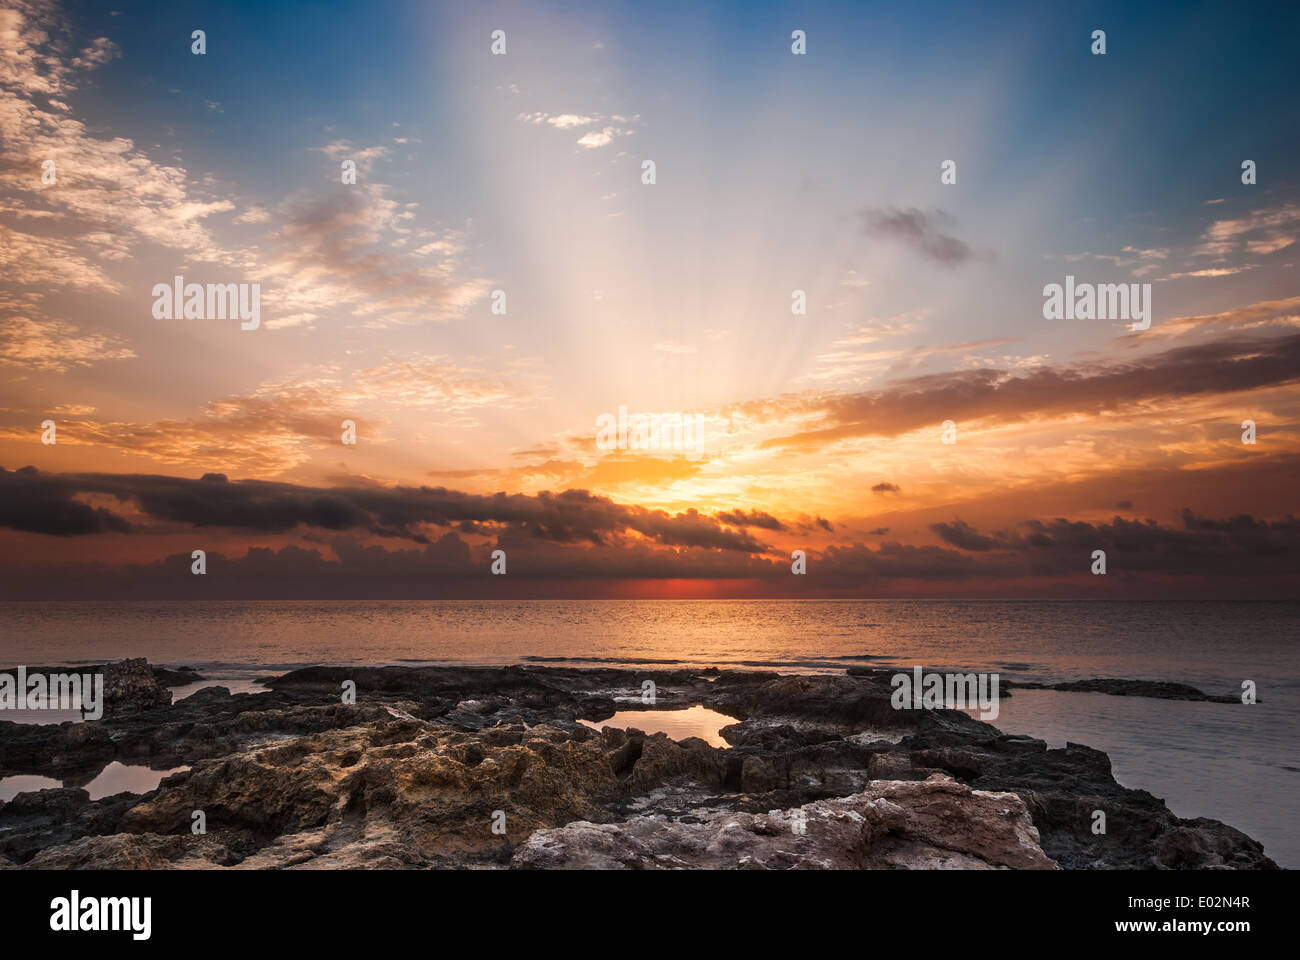 Rocky Beach and Sky with Sunrays on Cloudy Morning - Stock Image